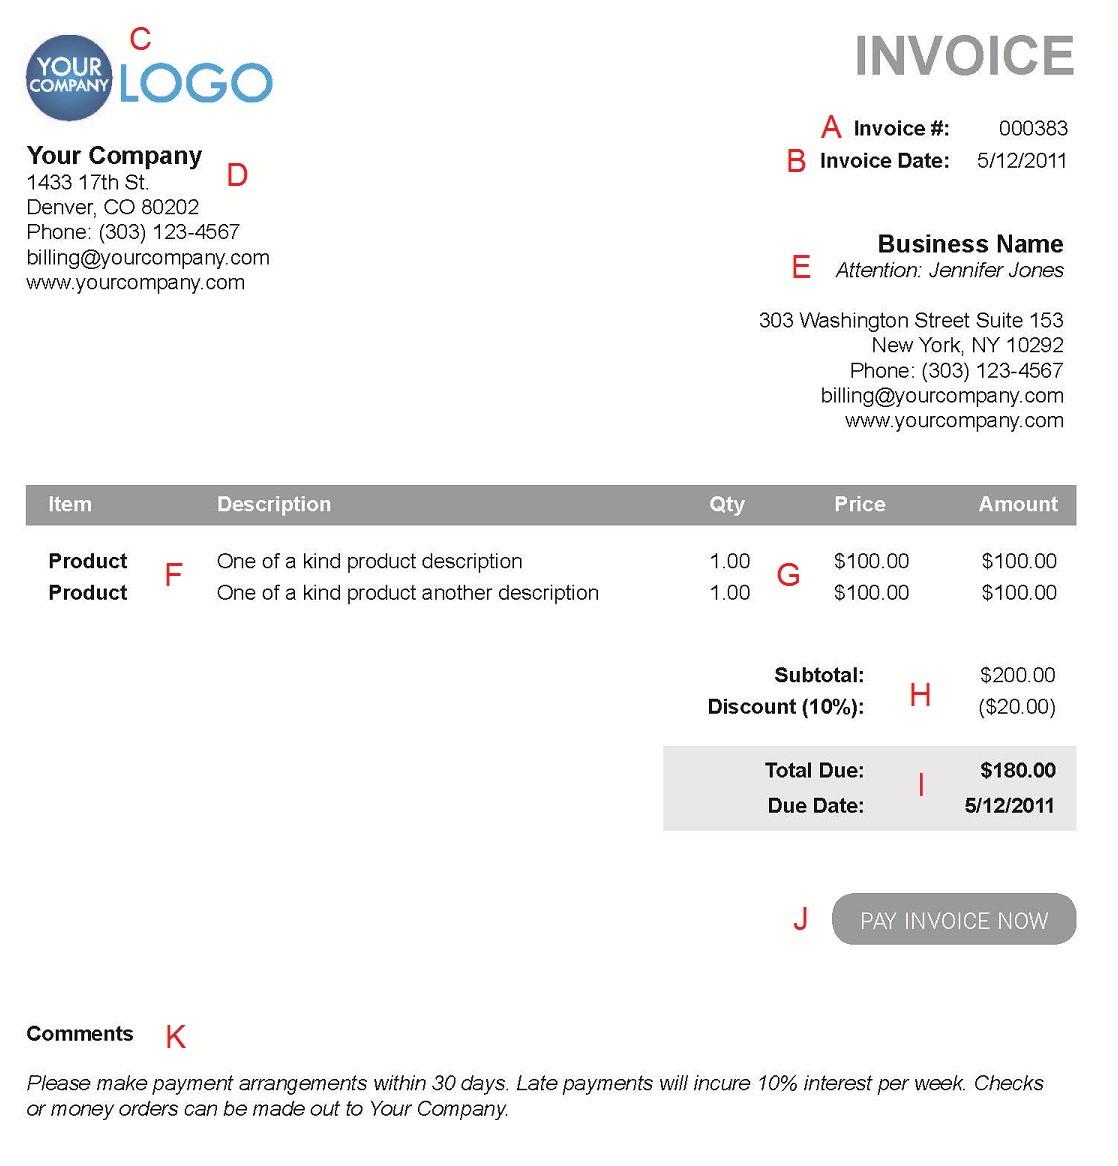 Usdgus  Remarkable The  Different Sections Of An Electronic Payment Invoice With Great A  With Appealing Sale Of Car Receipt Also Osceola County Business Tax Receipt In Addition Receipt For Services Rendered And Free Online Receipt As Well As Check Receipt Number Uscis Additionally Certified Mail Receipts From Paysimplecom With Usdgus  Great The  Different Sections Of An Electronic Payment Invoice With Appealing A  And Remarkable Sale Of Car Receipt Also Osceola County Business Tax Receipt In Addition Receipt For Services Rendered From Paysimplecom